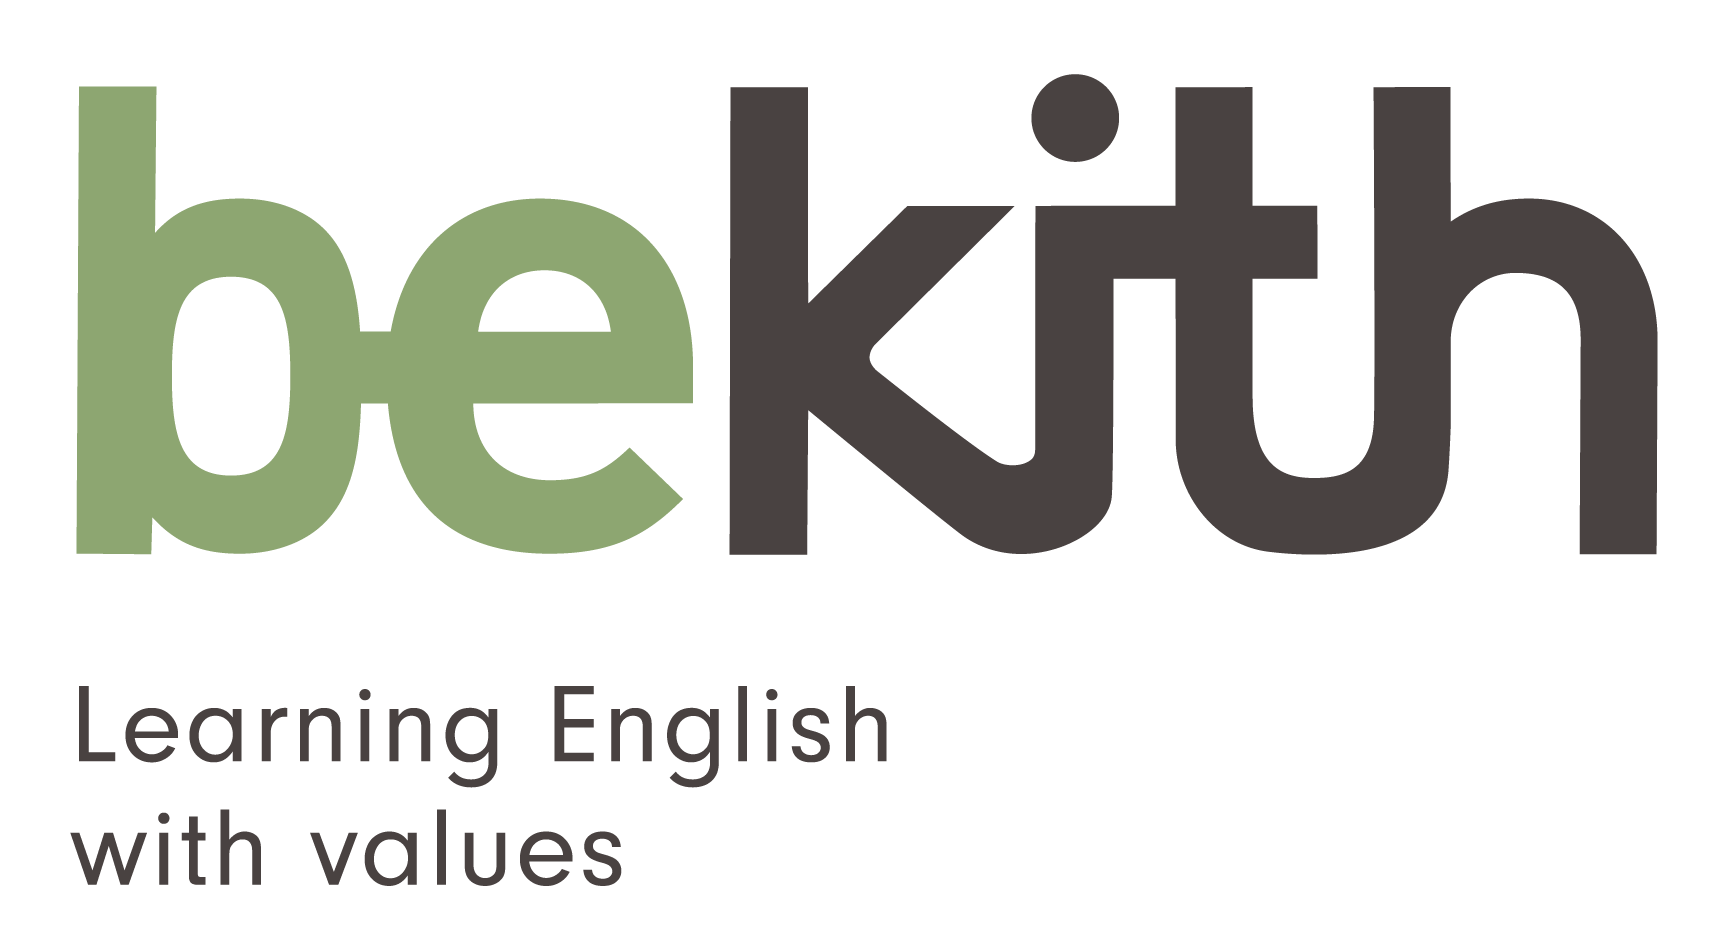 BeKith - Learning English with Values